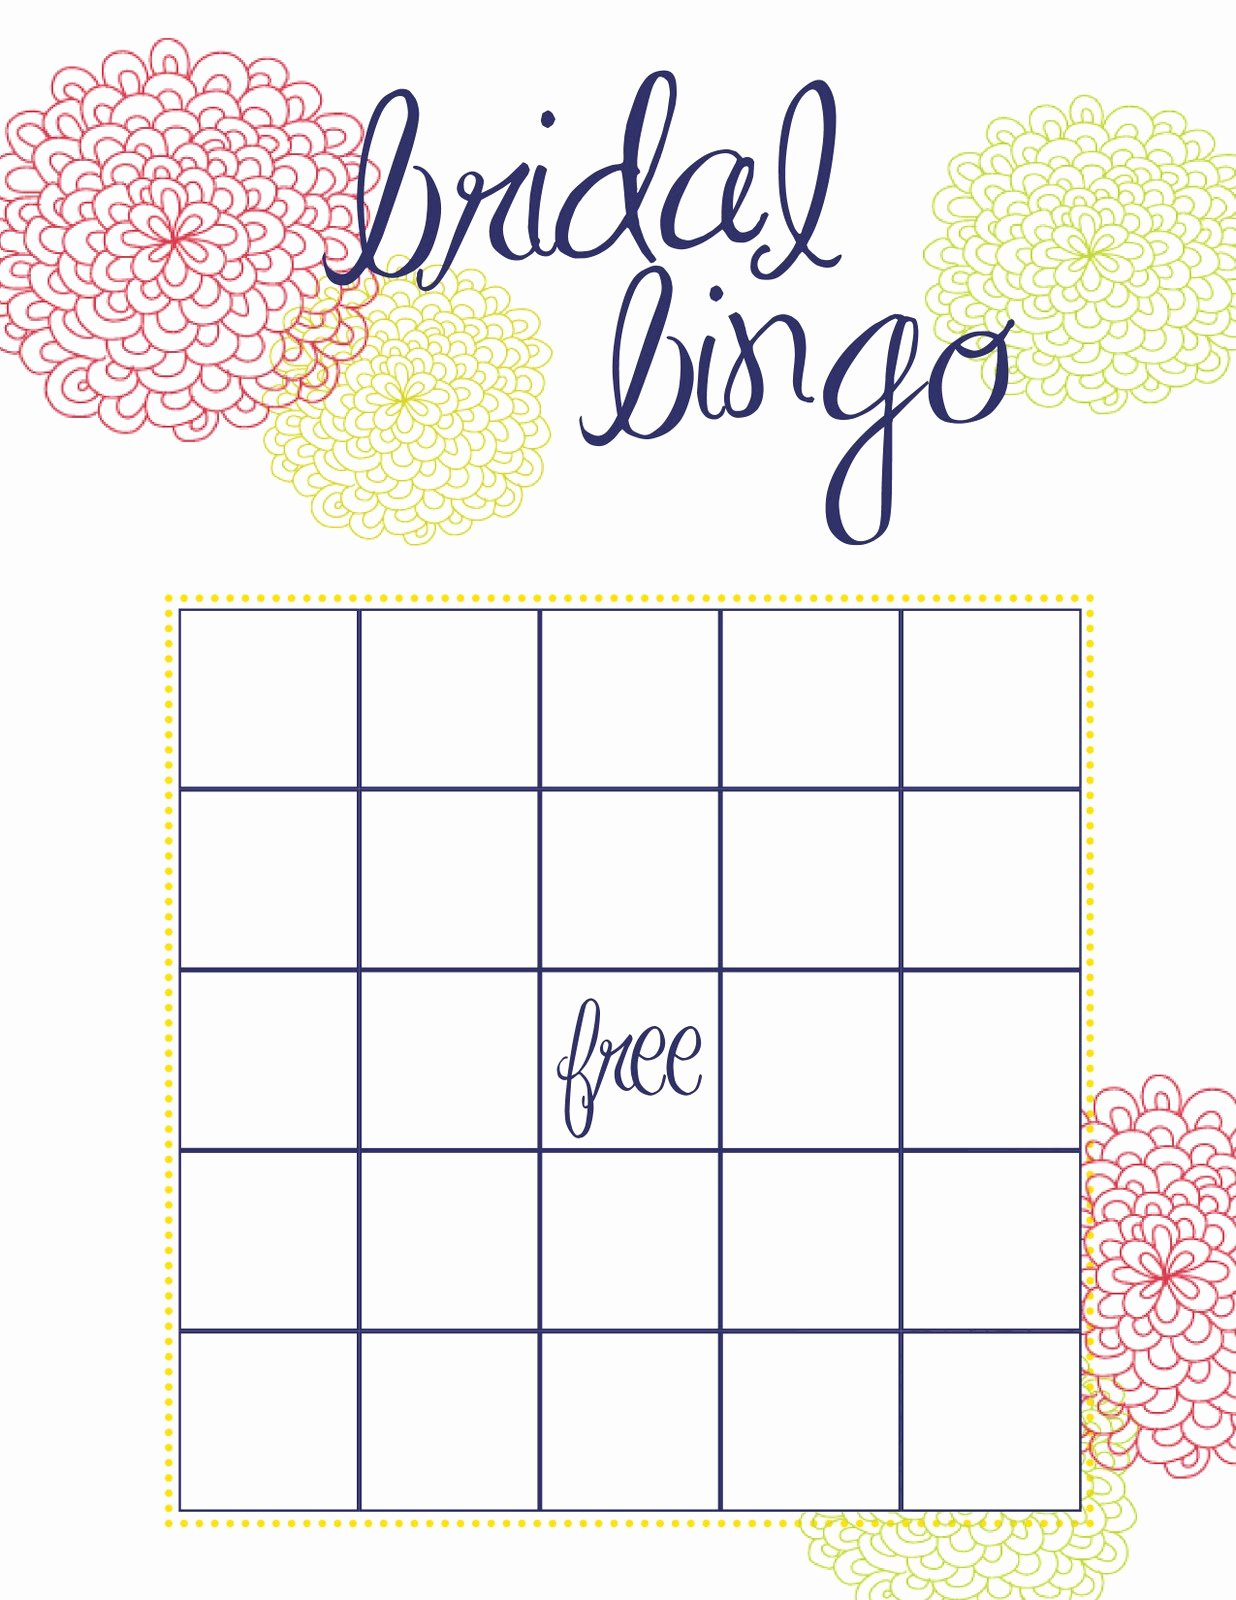 Bridal Shower Card Template Fresh How to Throw the Best Bridal Shower Pretty Happy Love